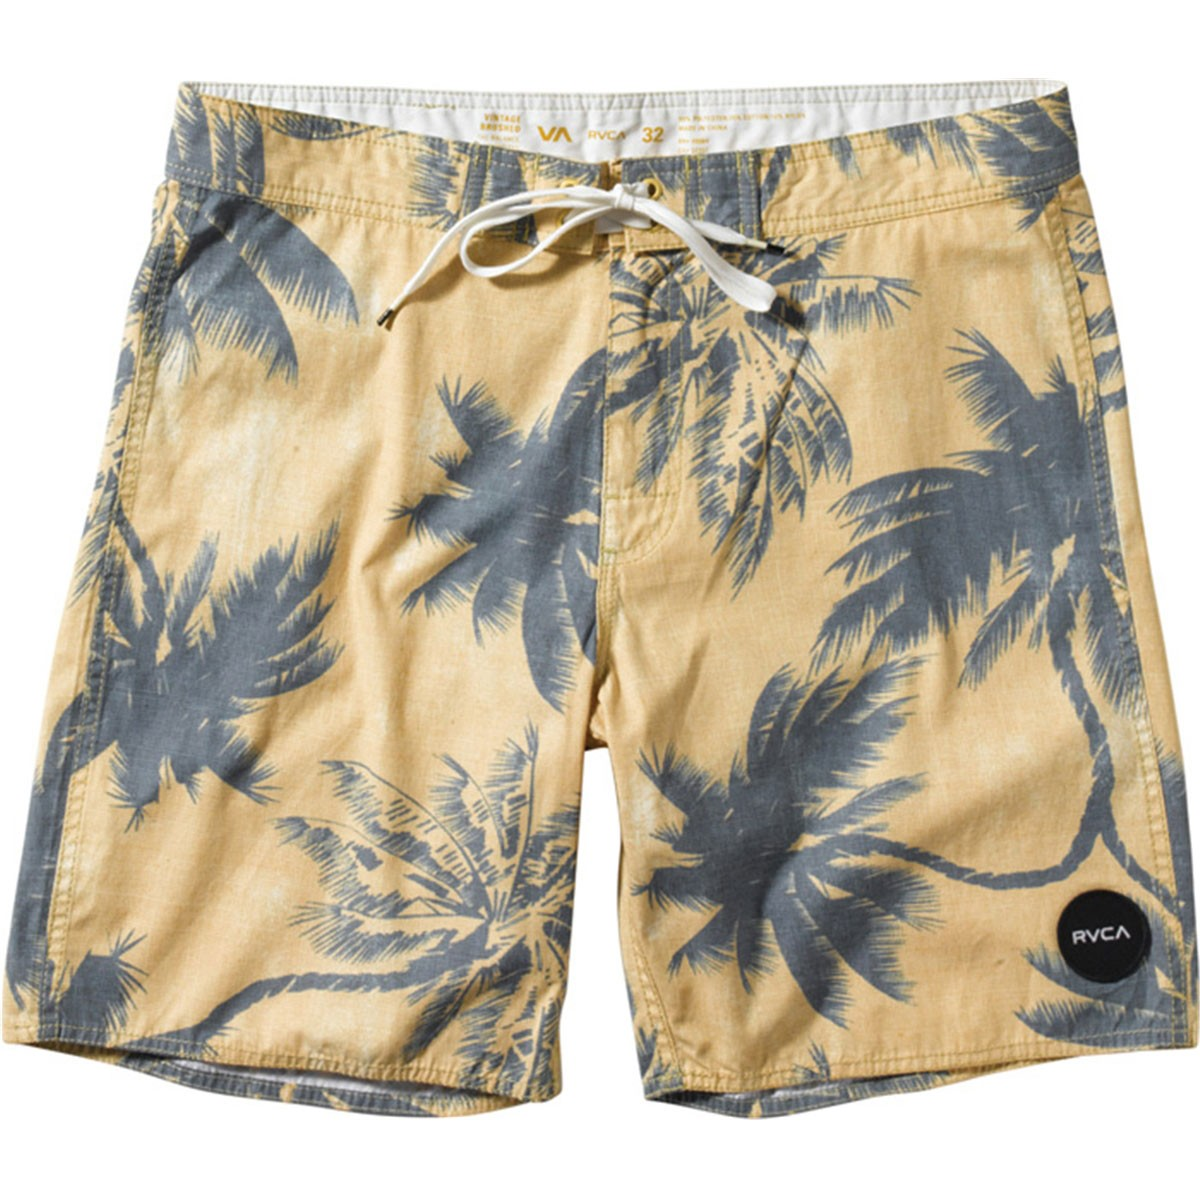 RVCA It's All Gravy Boardshorts - Golden